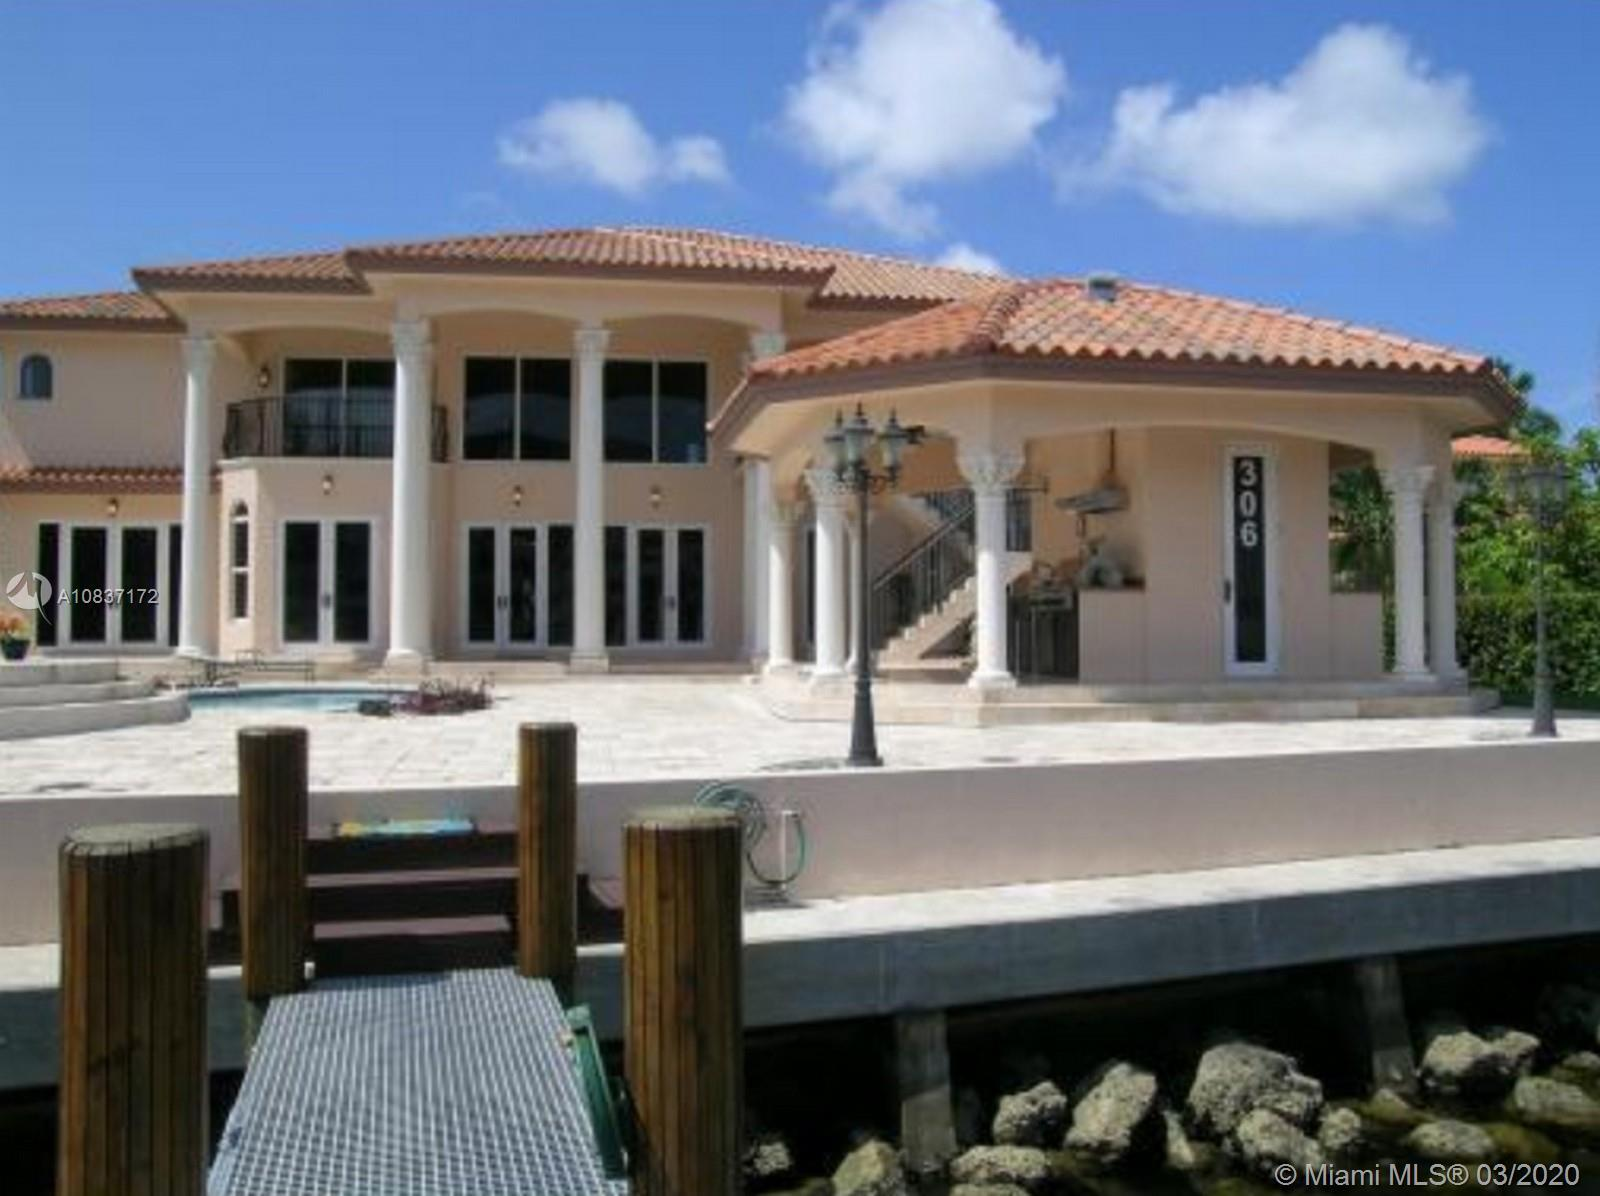 Unique Home in fabulous location on Atlantic Isle (a 54 home island in Sunny Isles Beach across the